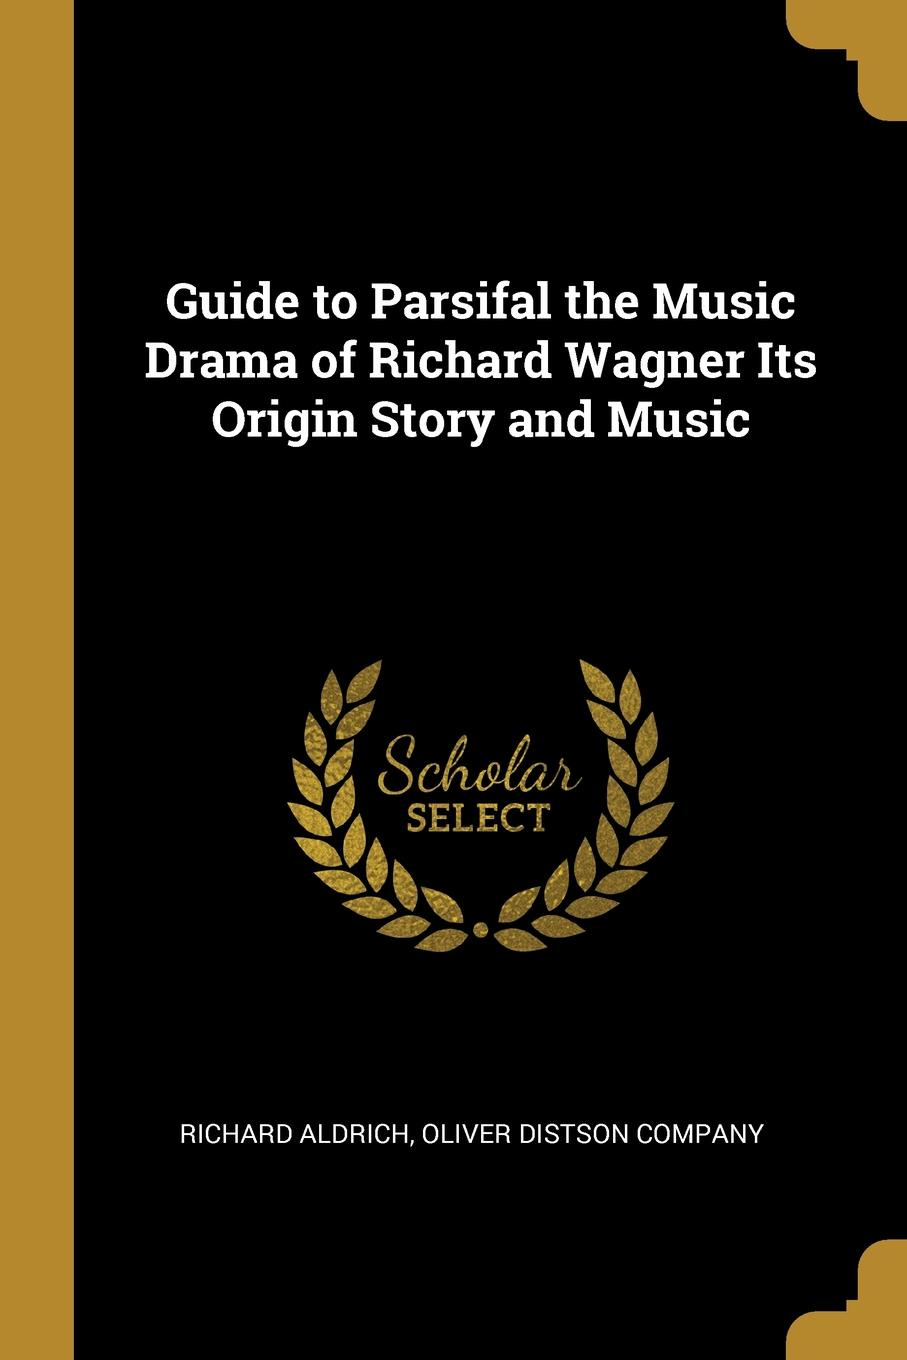 Richard Aldrich Guide to Parsifal the Music Drama of Richard Wagner Its Origin Story and Music heinrich wilsing richard wagner the mastersingers of nurnberg a guide to the music and the drama